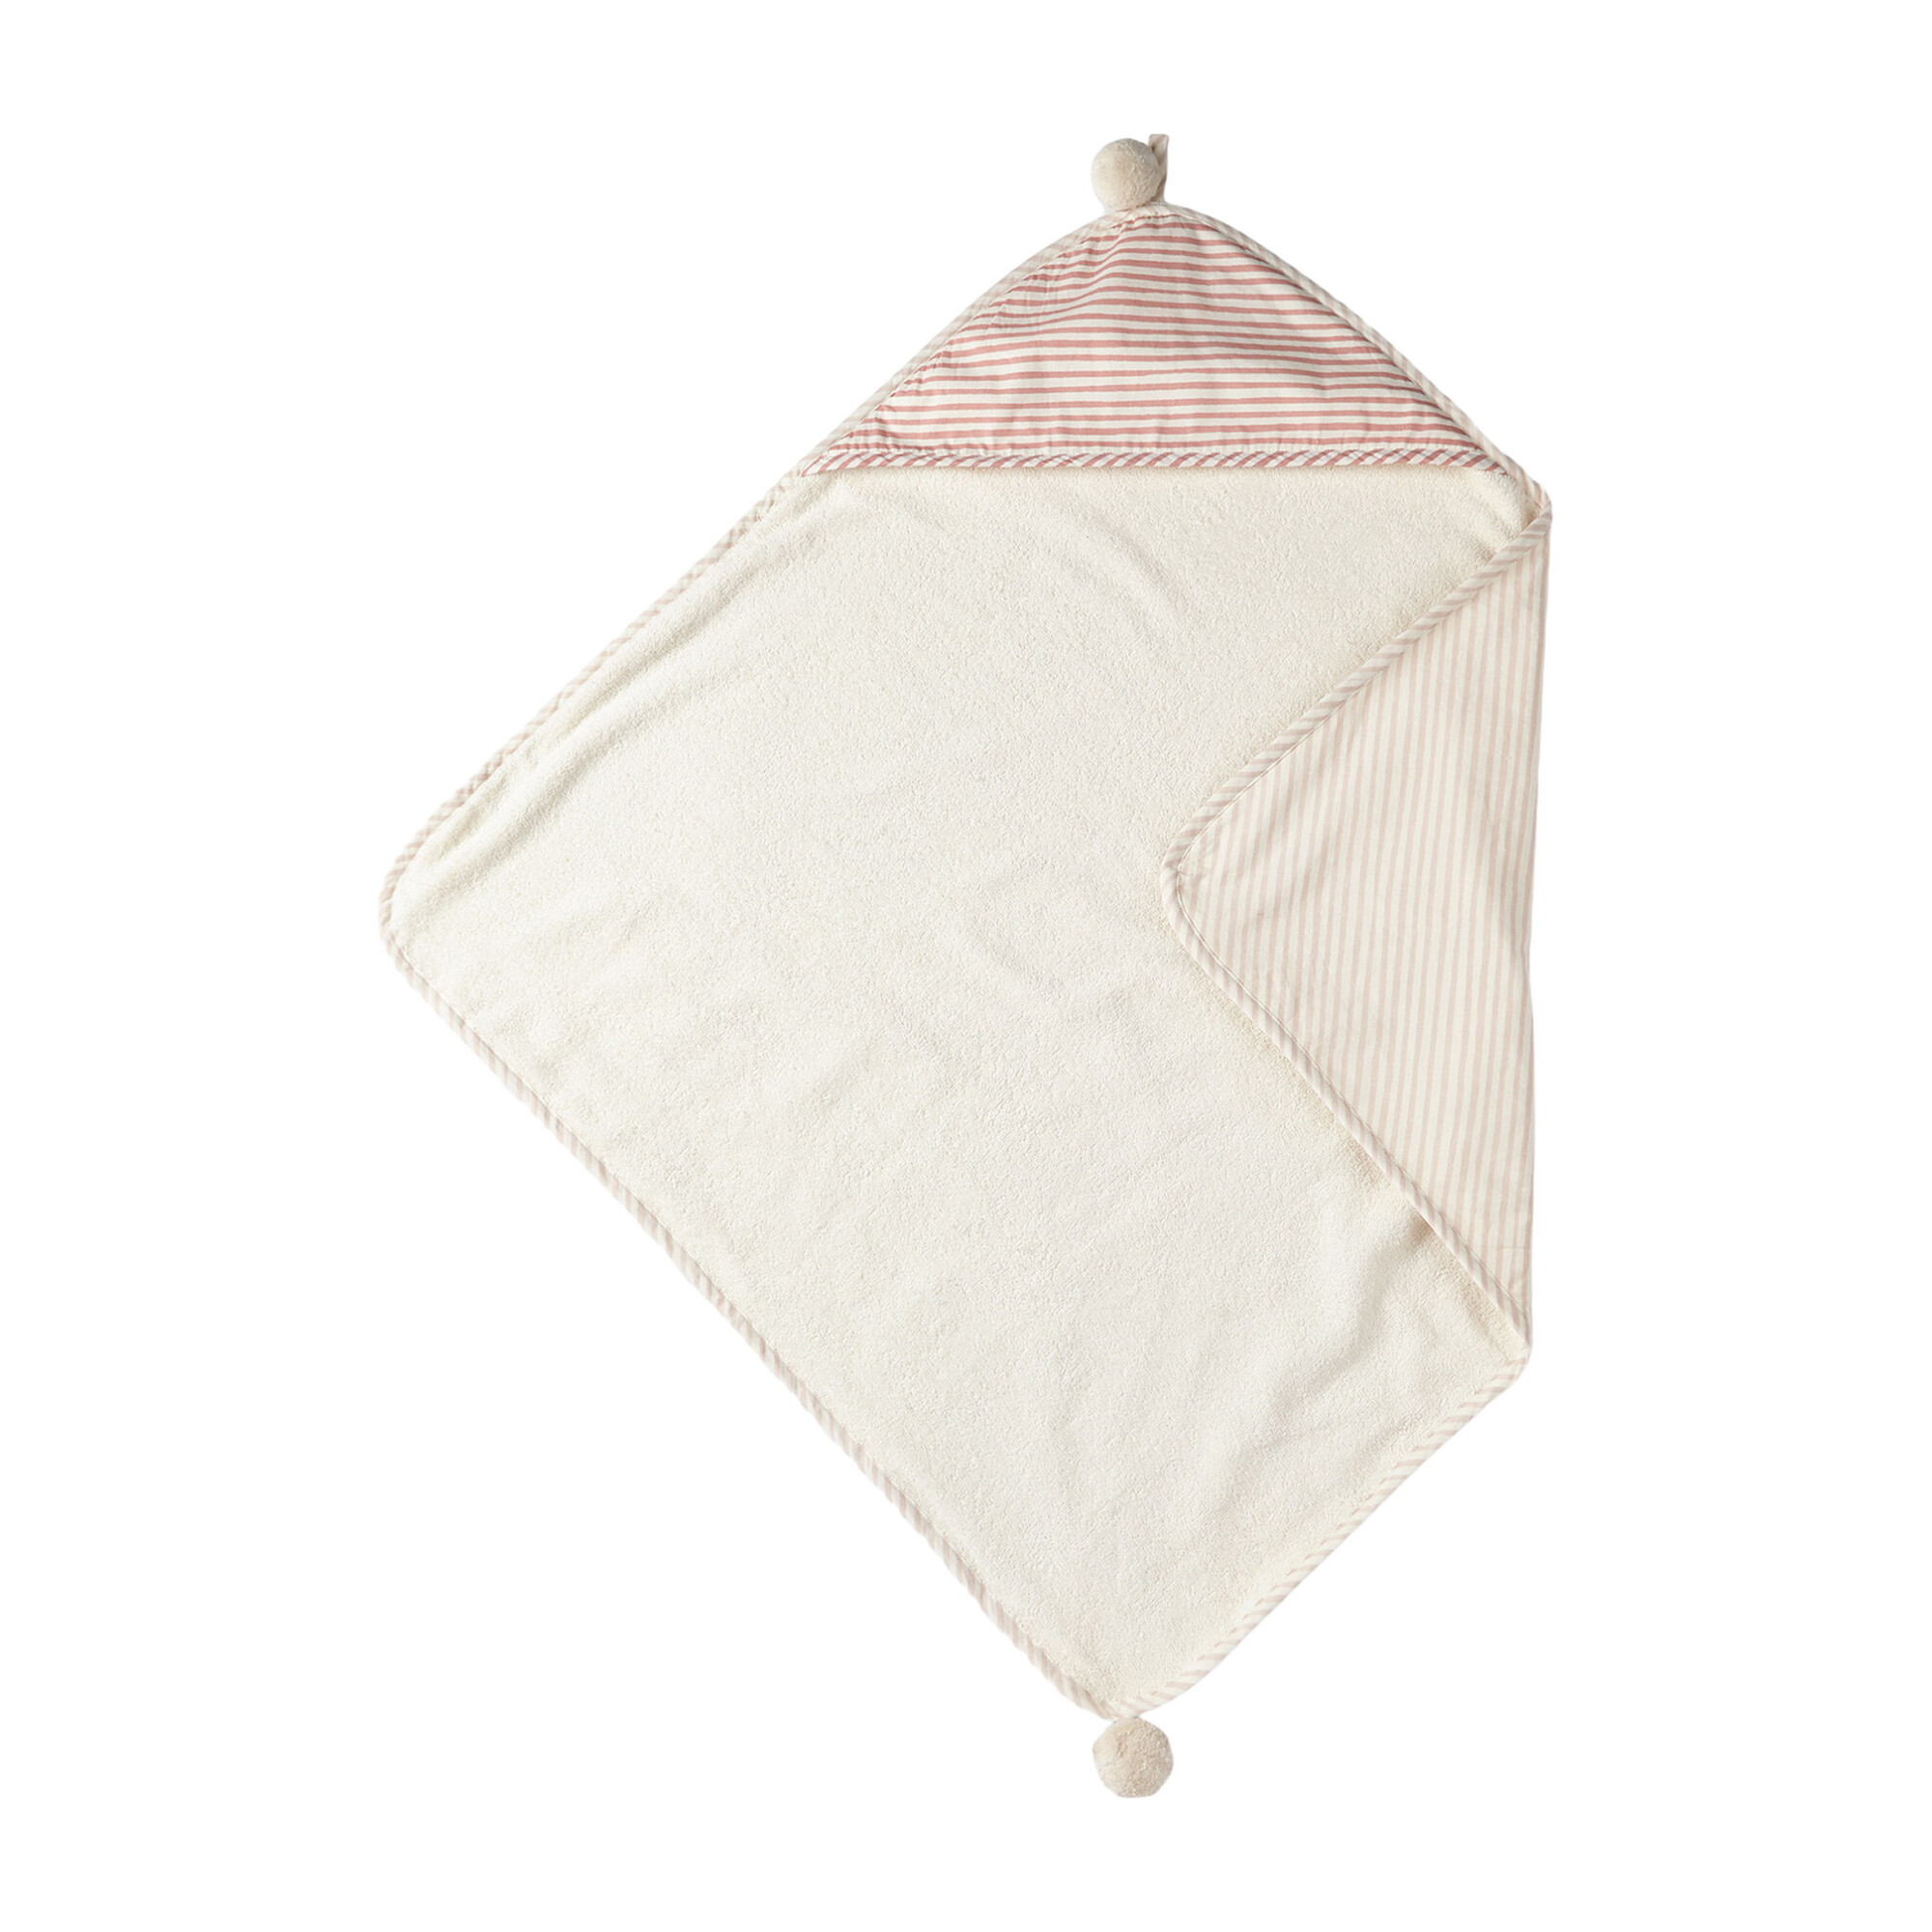 Stripes Away Hooded Towel, Petal/Dark Pink